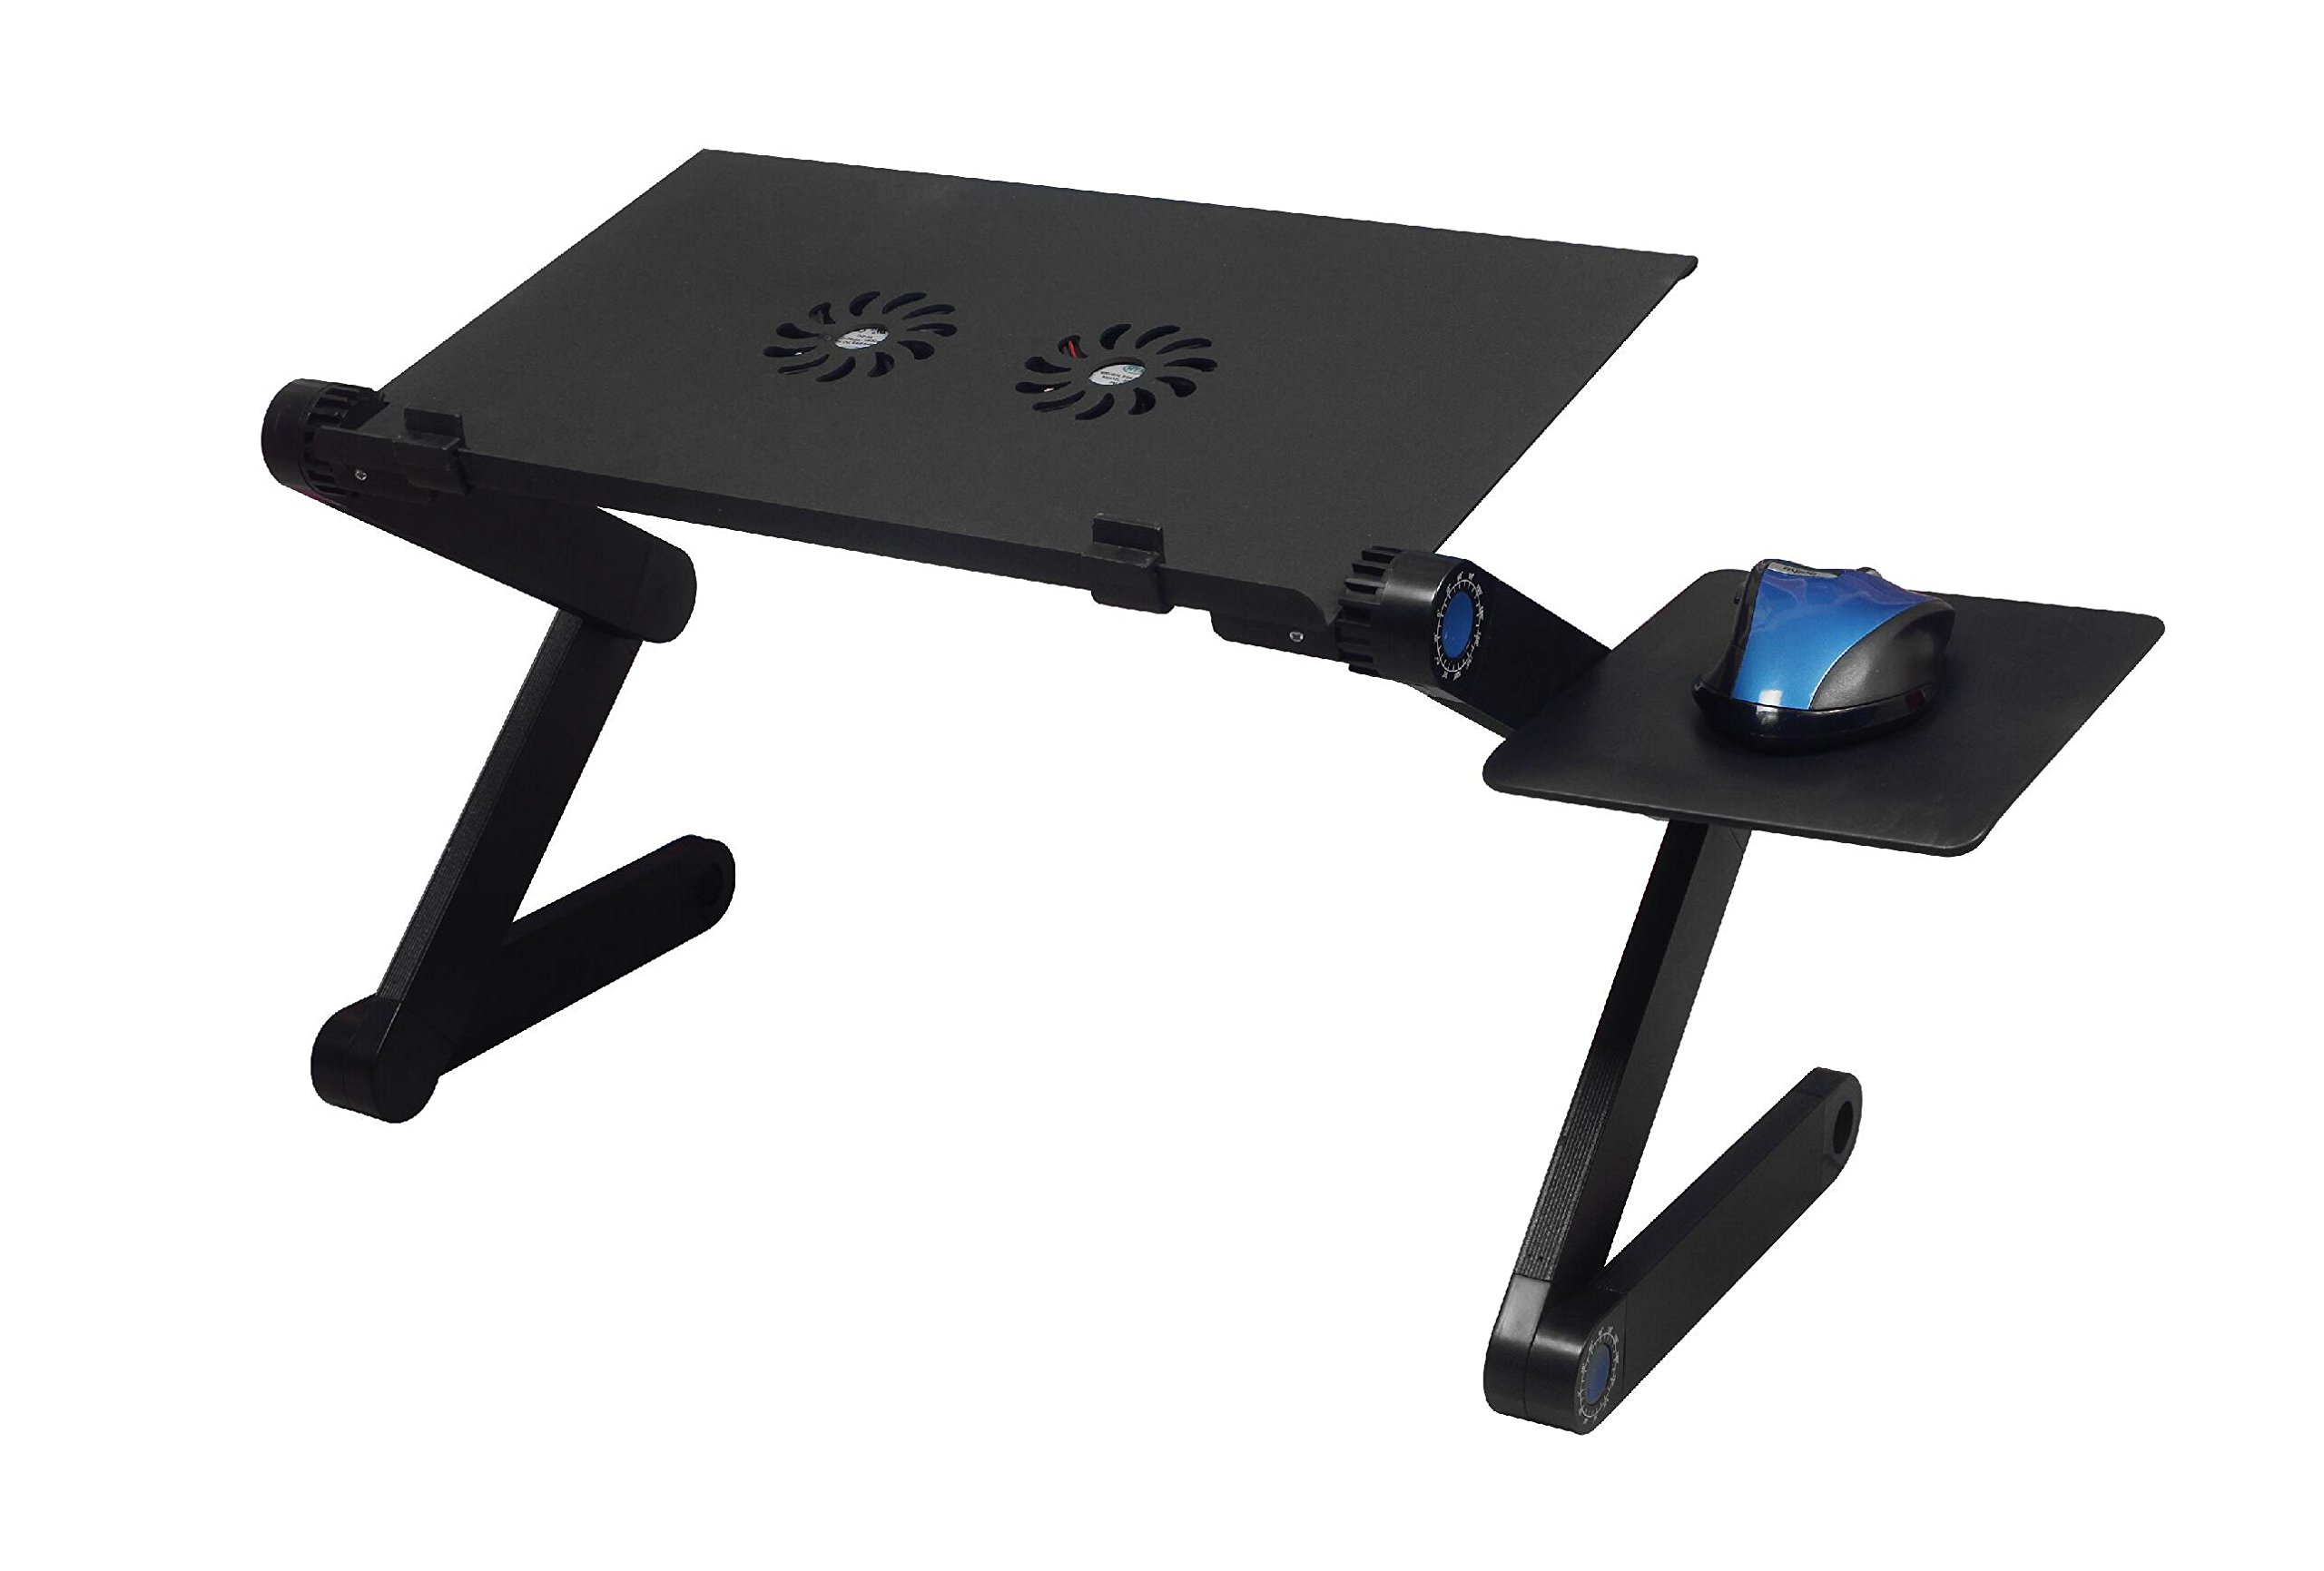 MOMMY FROG DESK (BLACK) w/ double fans - Affordable standing desk, Folding camping desk, Portable table, Breakfast tray, Adjustable reading stand, Cook book stand, Ergonomic desk, Boost productivity